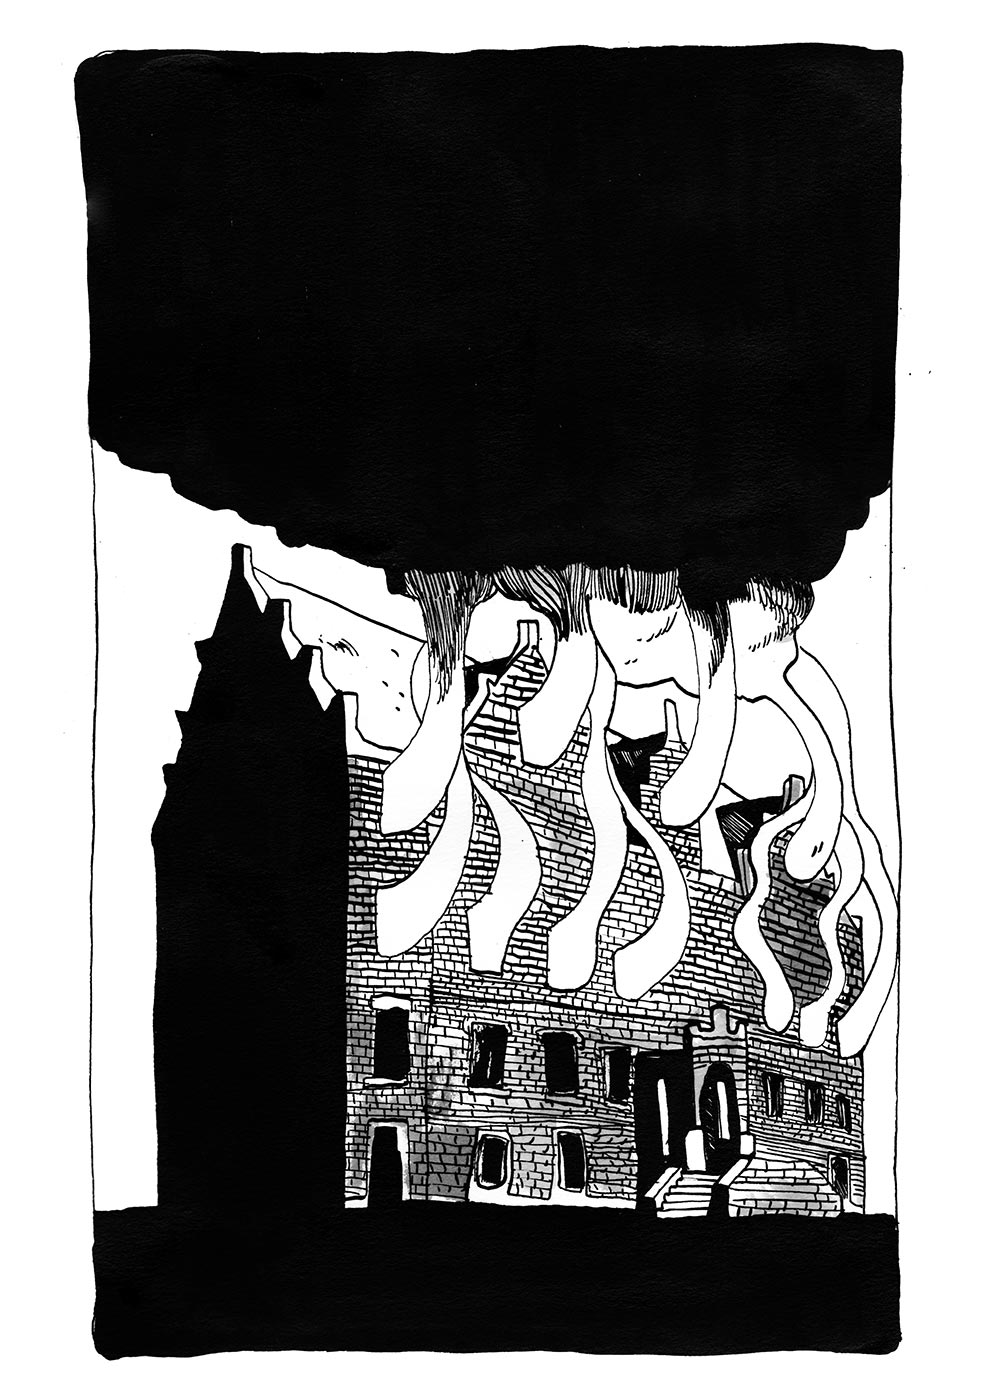 art-prints, gliceé, graphical, illustrative, monochrome, architecture, sky, black, white, ink, paper, atmosphere, black-and-white, buildings, Buy original high quality art. Paintings, drawings, limited edition prints & posters by talented artists.